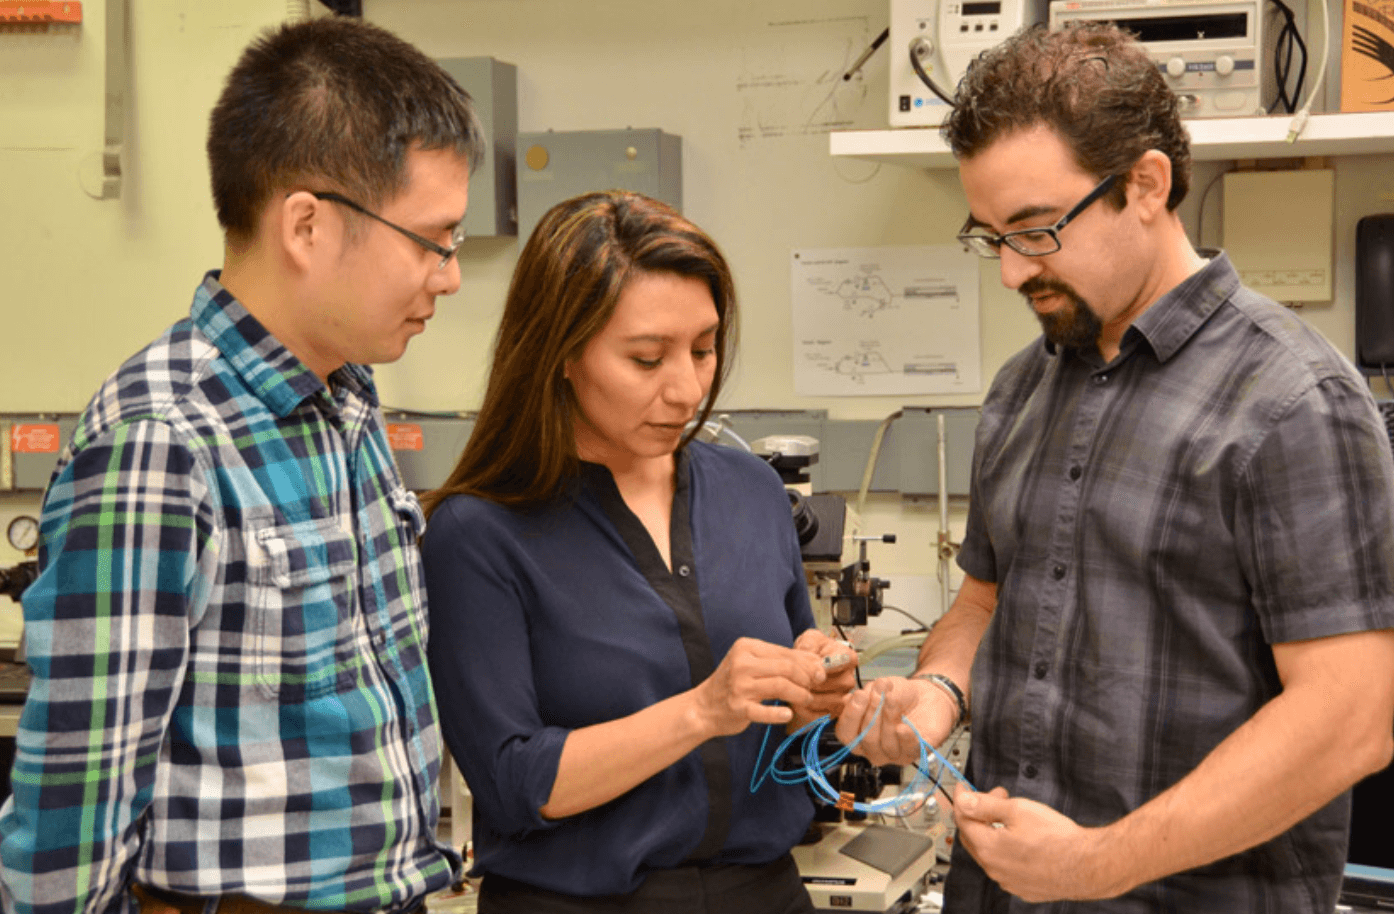 IBM Researchers Chi Xiong, Norma Sosa and Will Green prepare a sensor for testing in the lab.